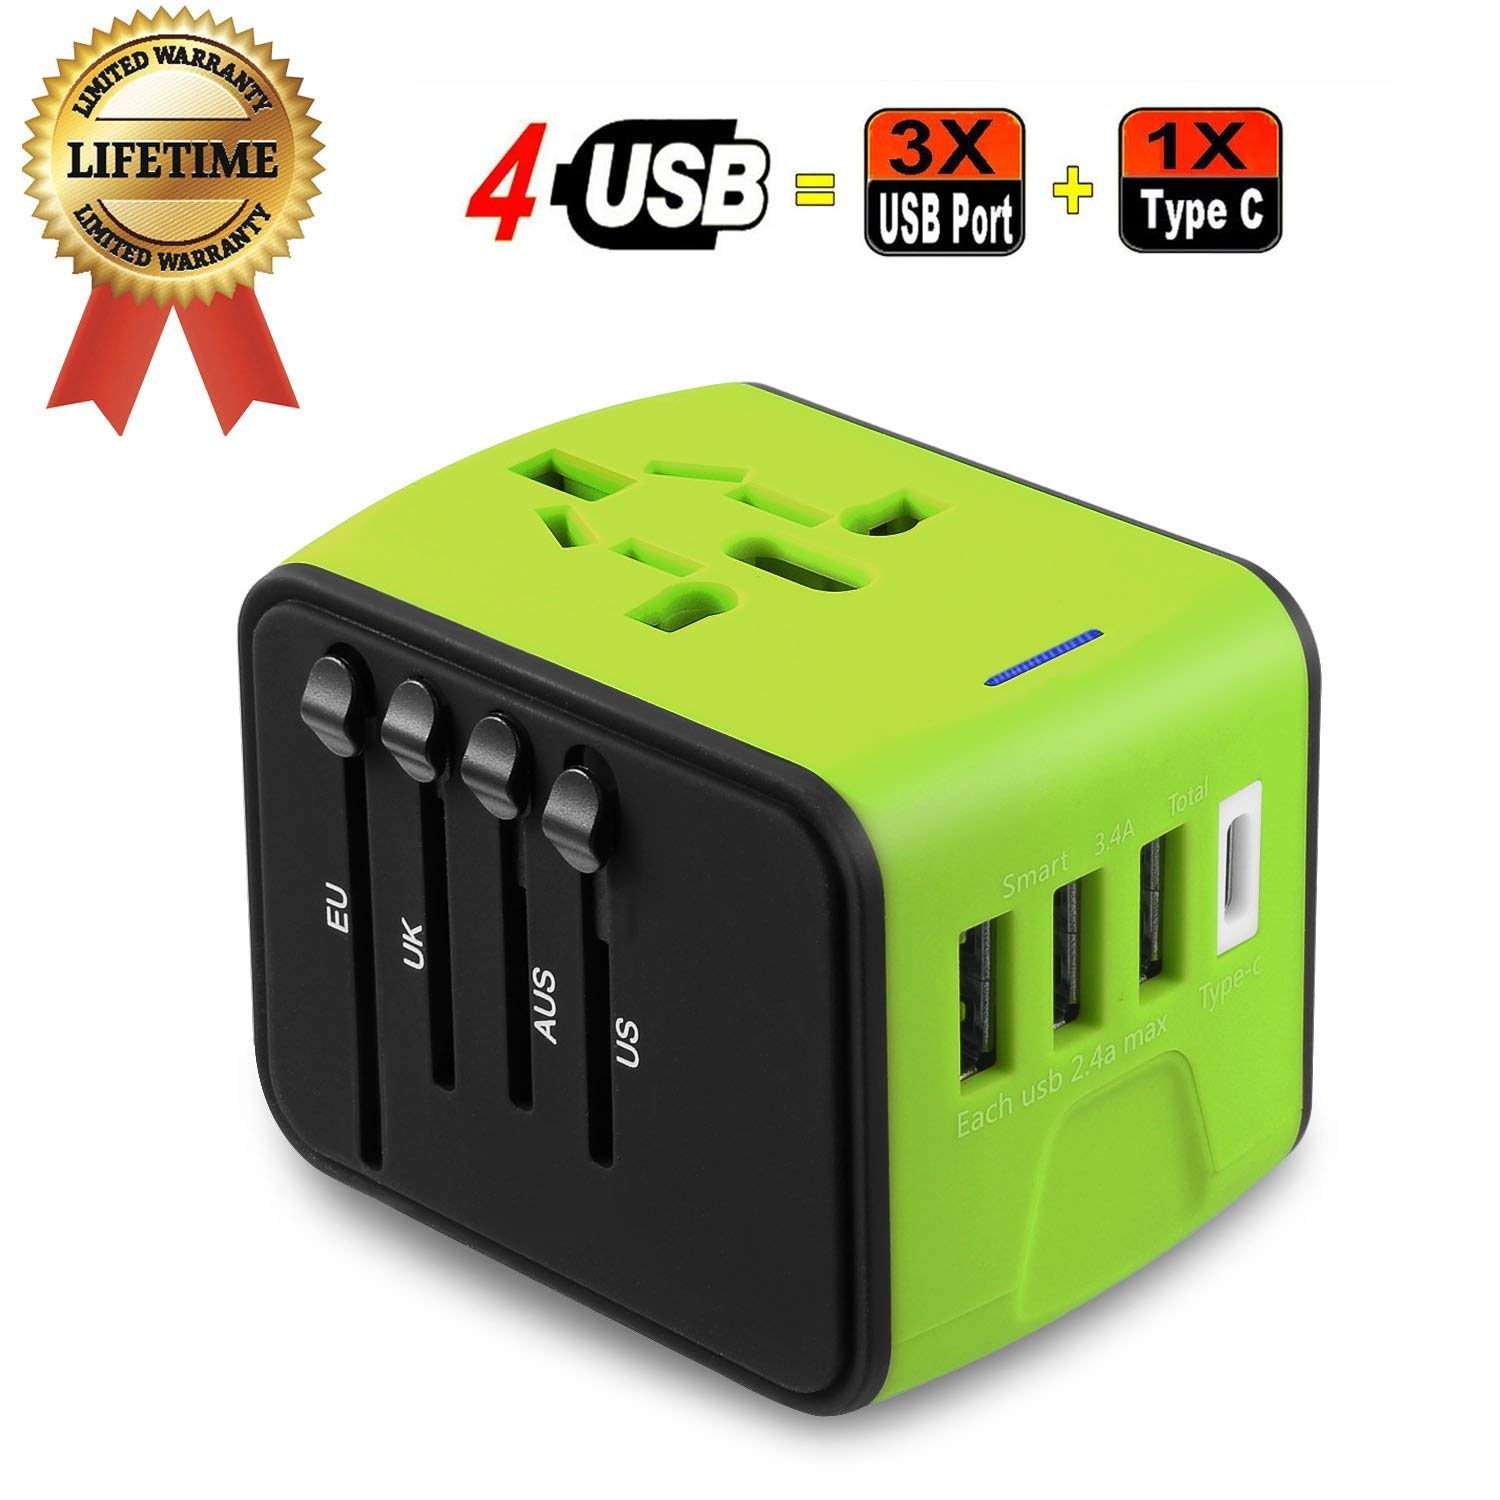 Travel Adapter, JMFONE Universal Travel Adapter 3.4A Type C 4 USB International World Power Plug Adapter Travel Wall Charger USB Plug with UK, EU, AU, US for 200 Countries (Green)